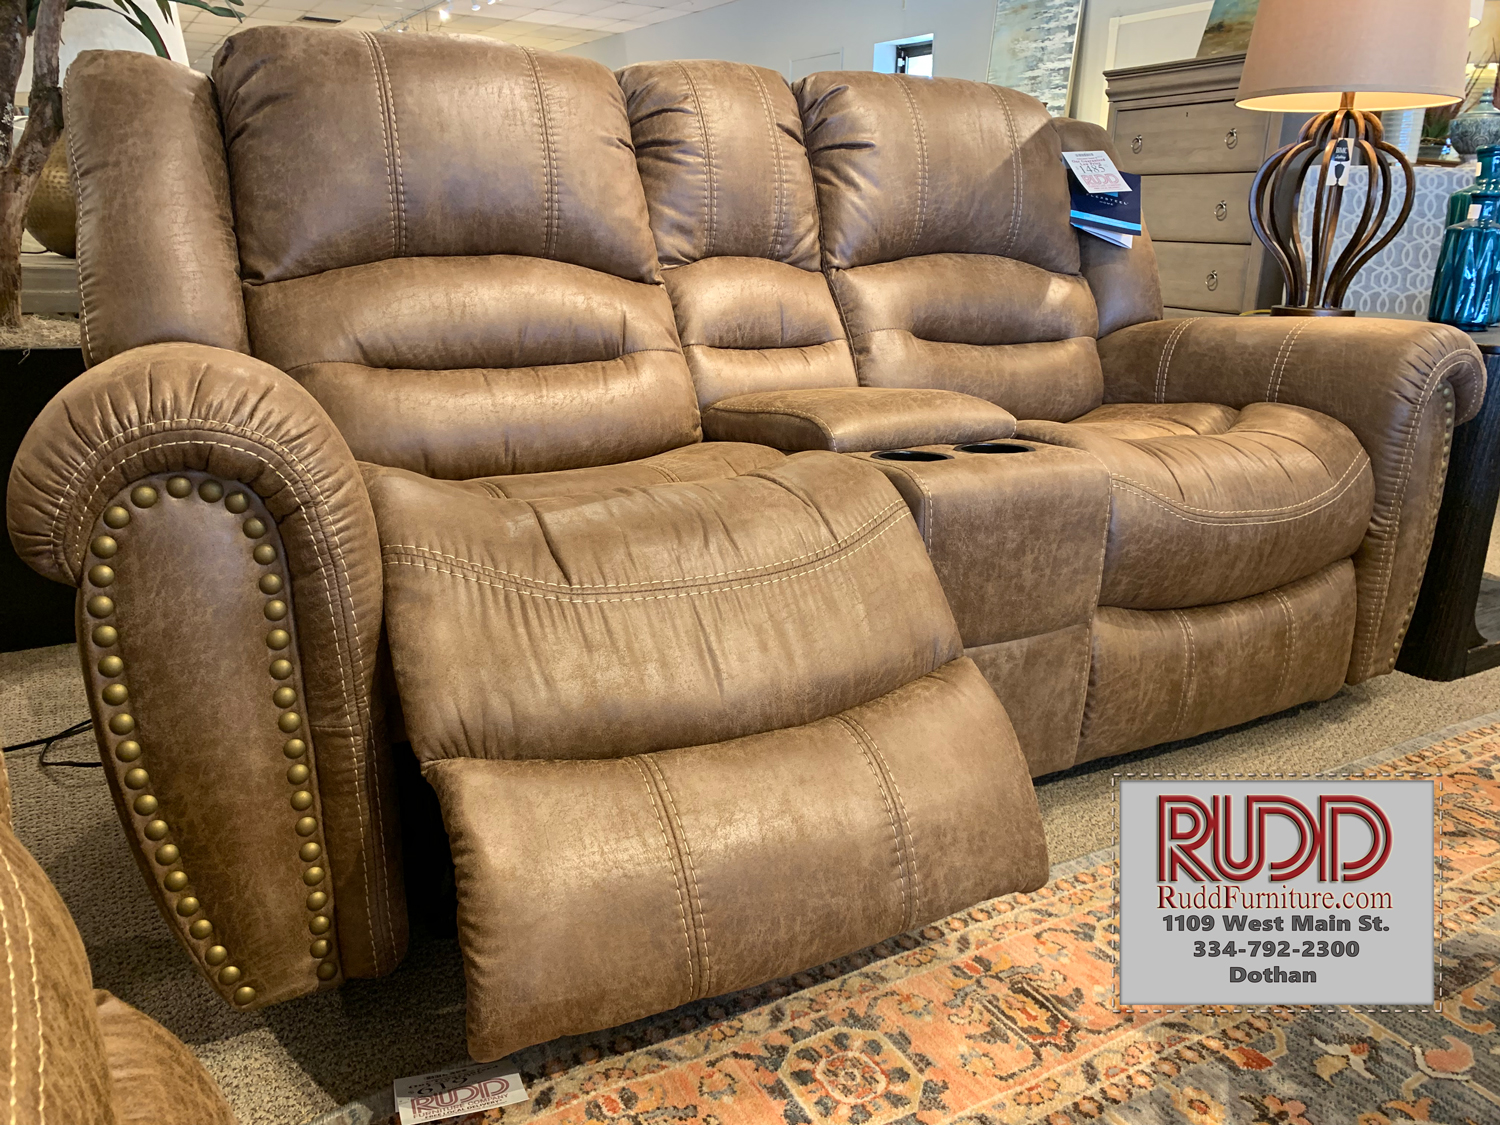 1710 604p Power Dual Reclining Fabric Loveseat With